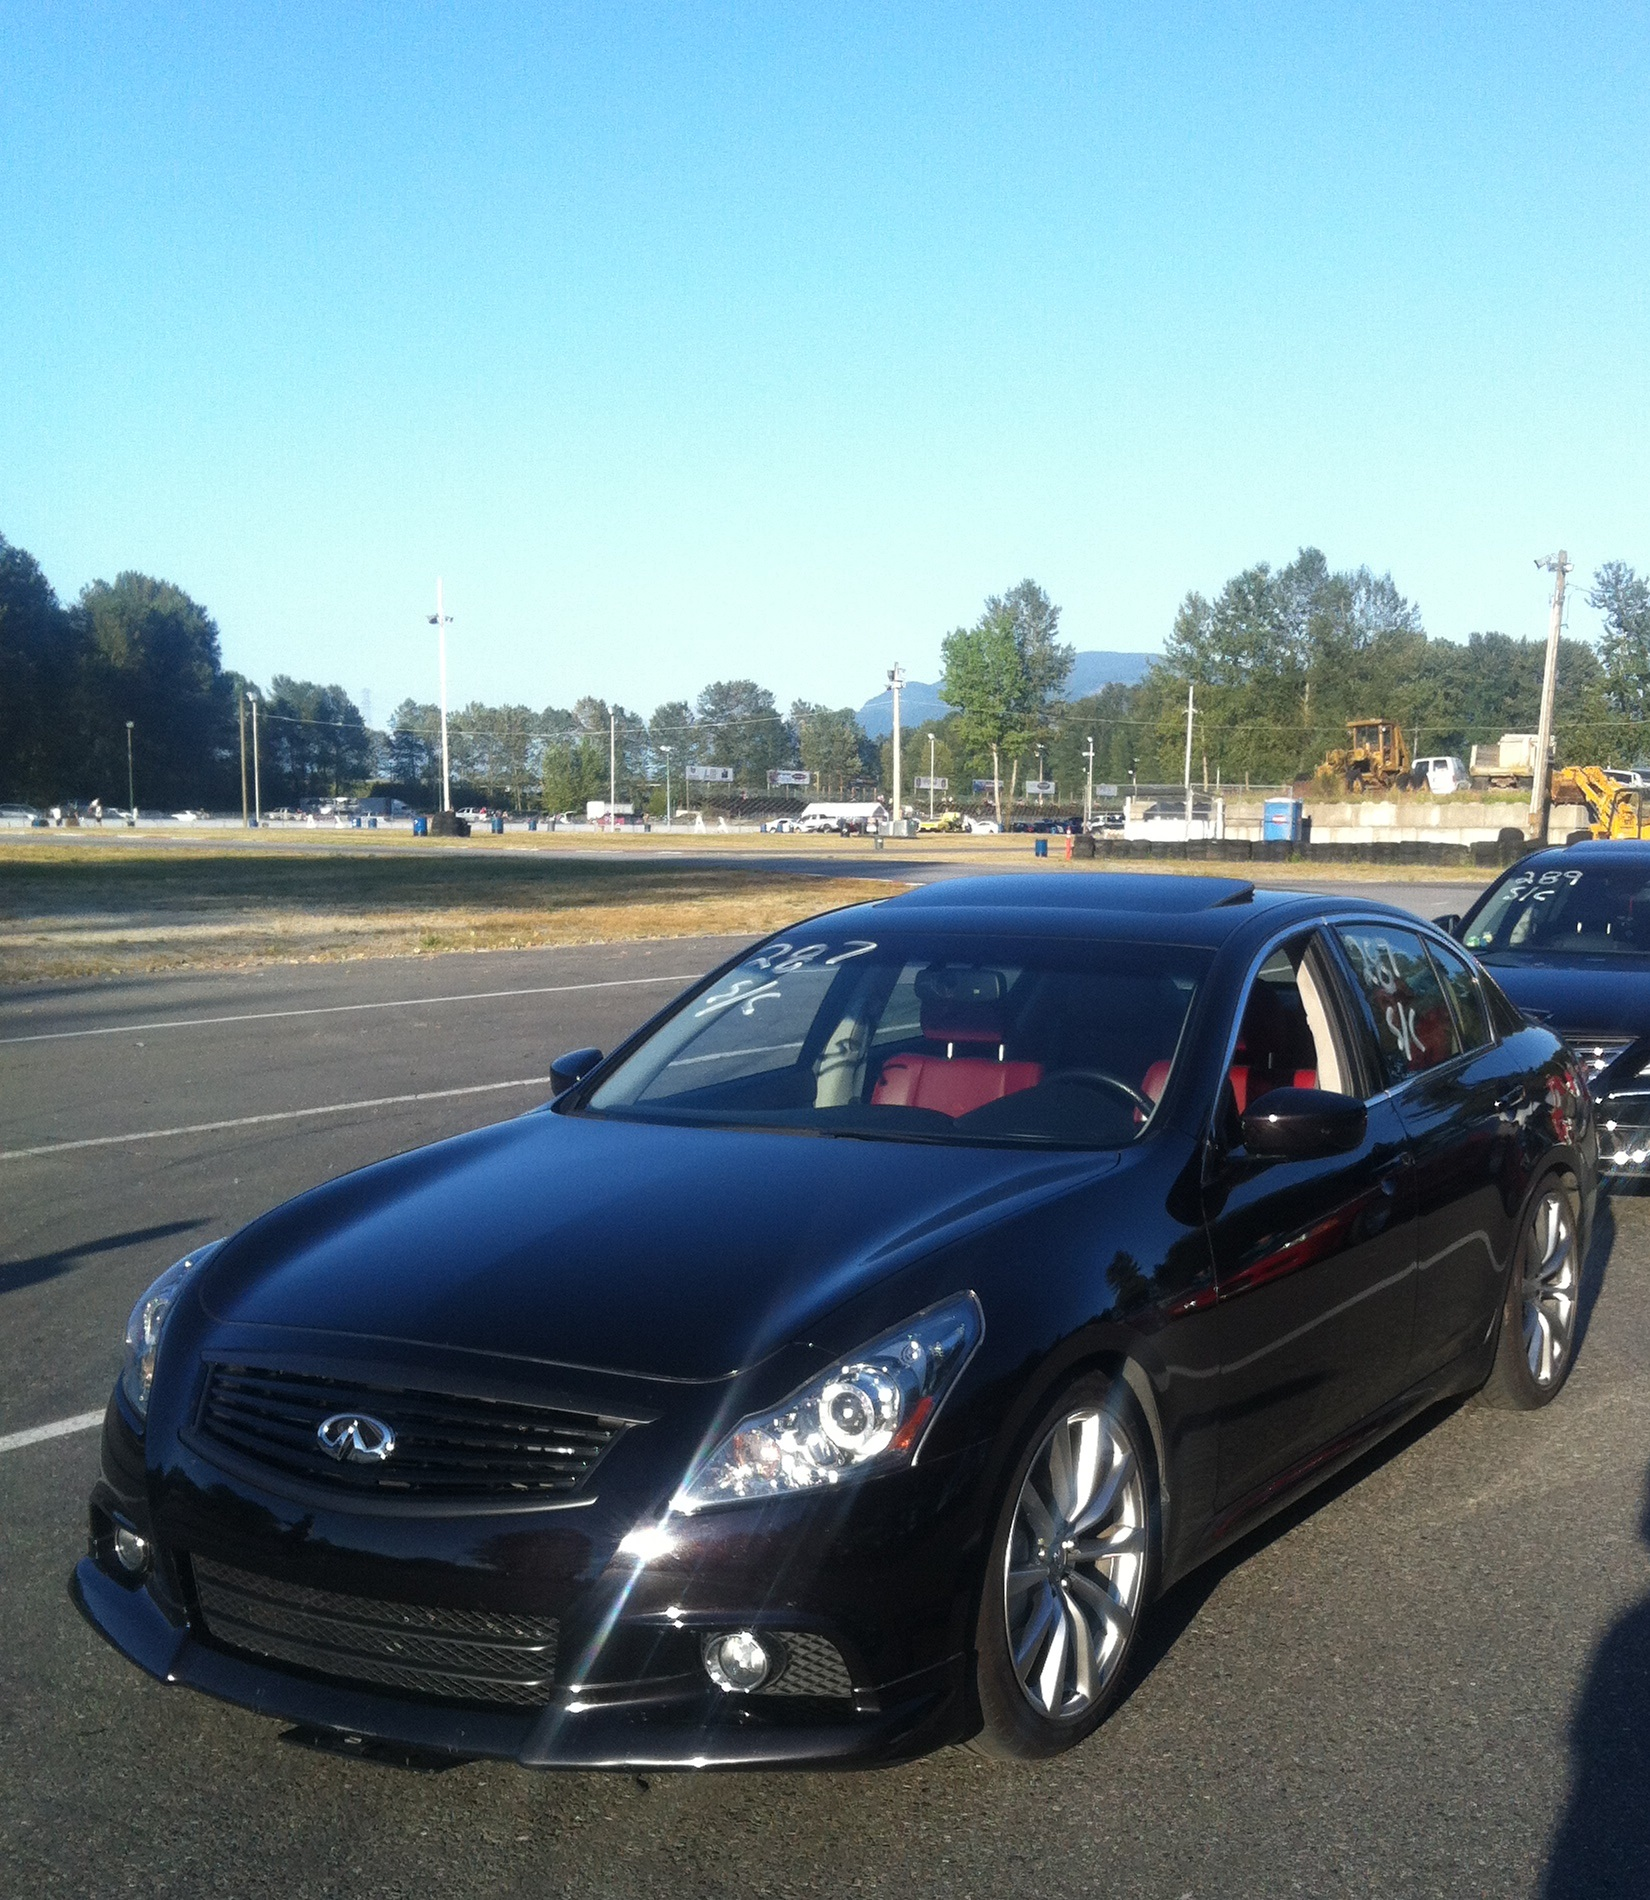 G37 Sedan 0 60 >> 2011 Infiniti G37 Sport 1 4 Mile Drag Racing Timeslip Specs 0 60